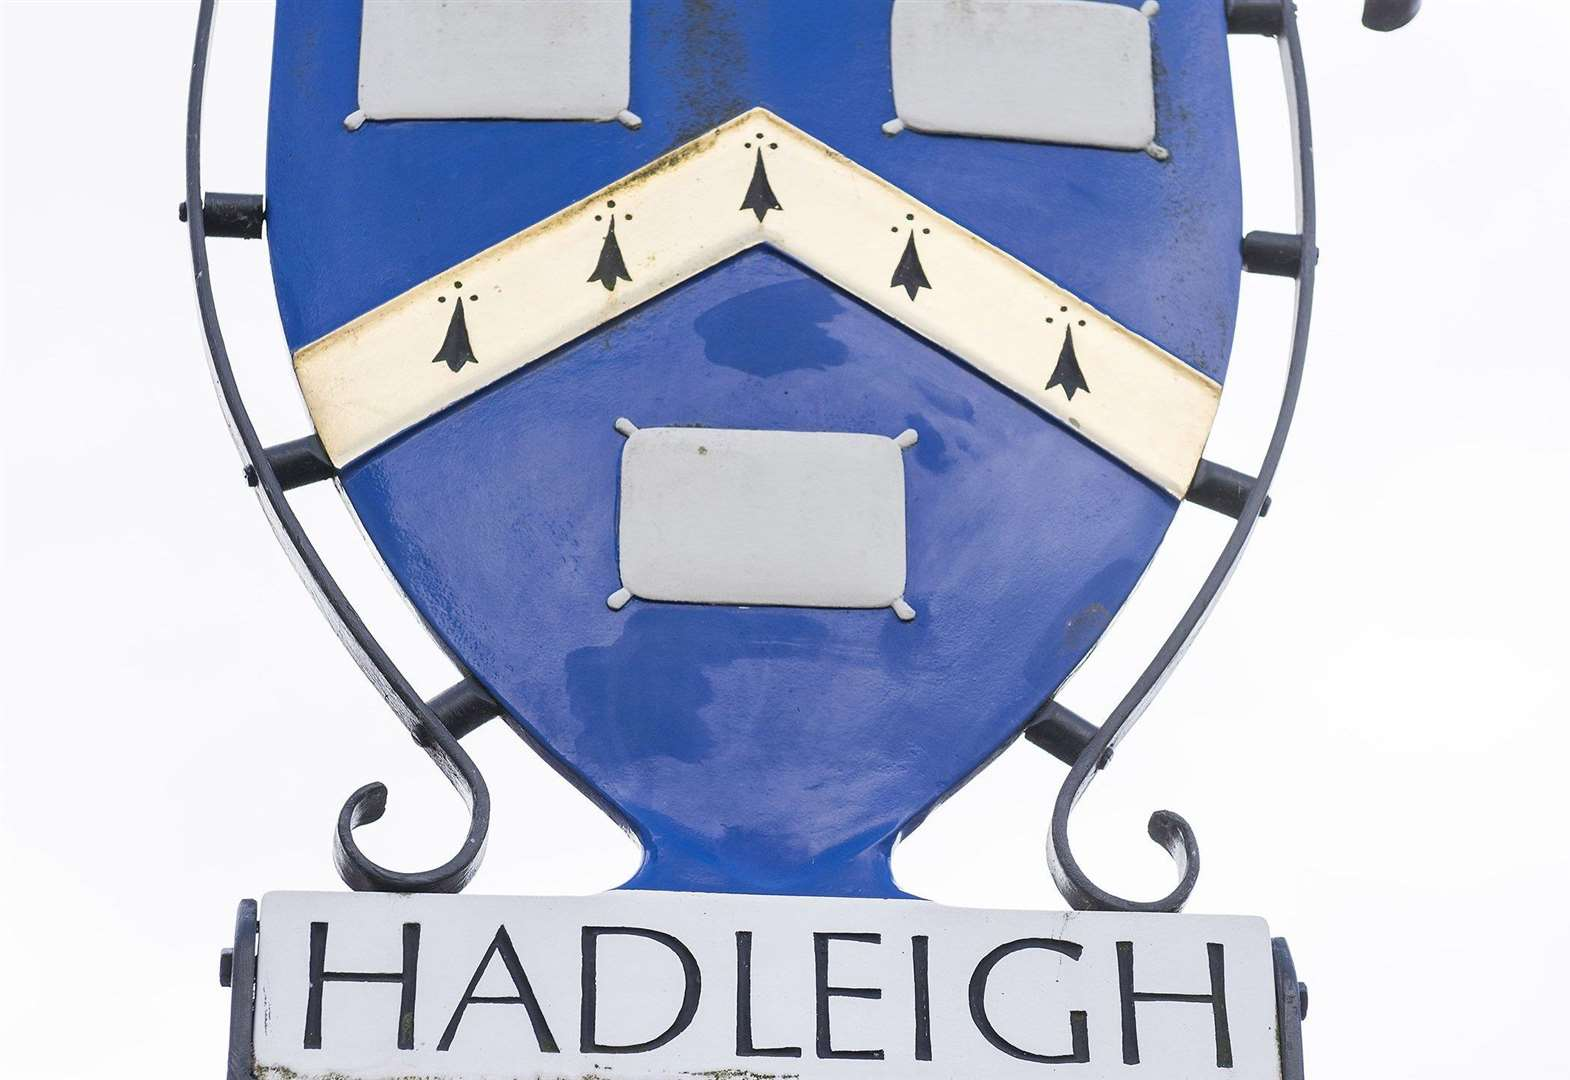 Hadleigh in limbo over uncertain future of community bus service